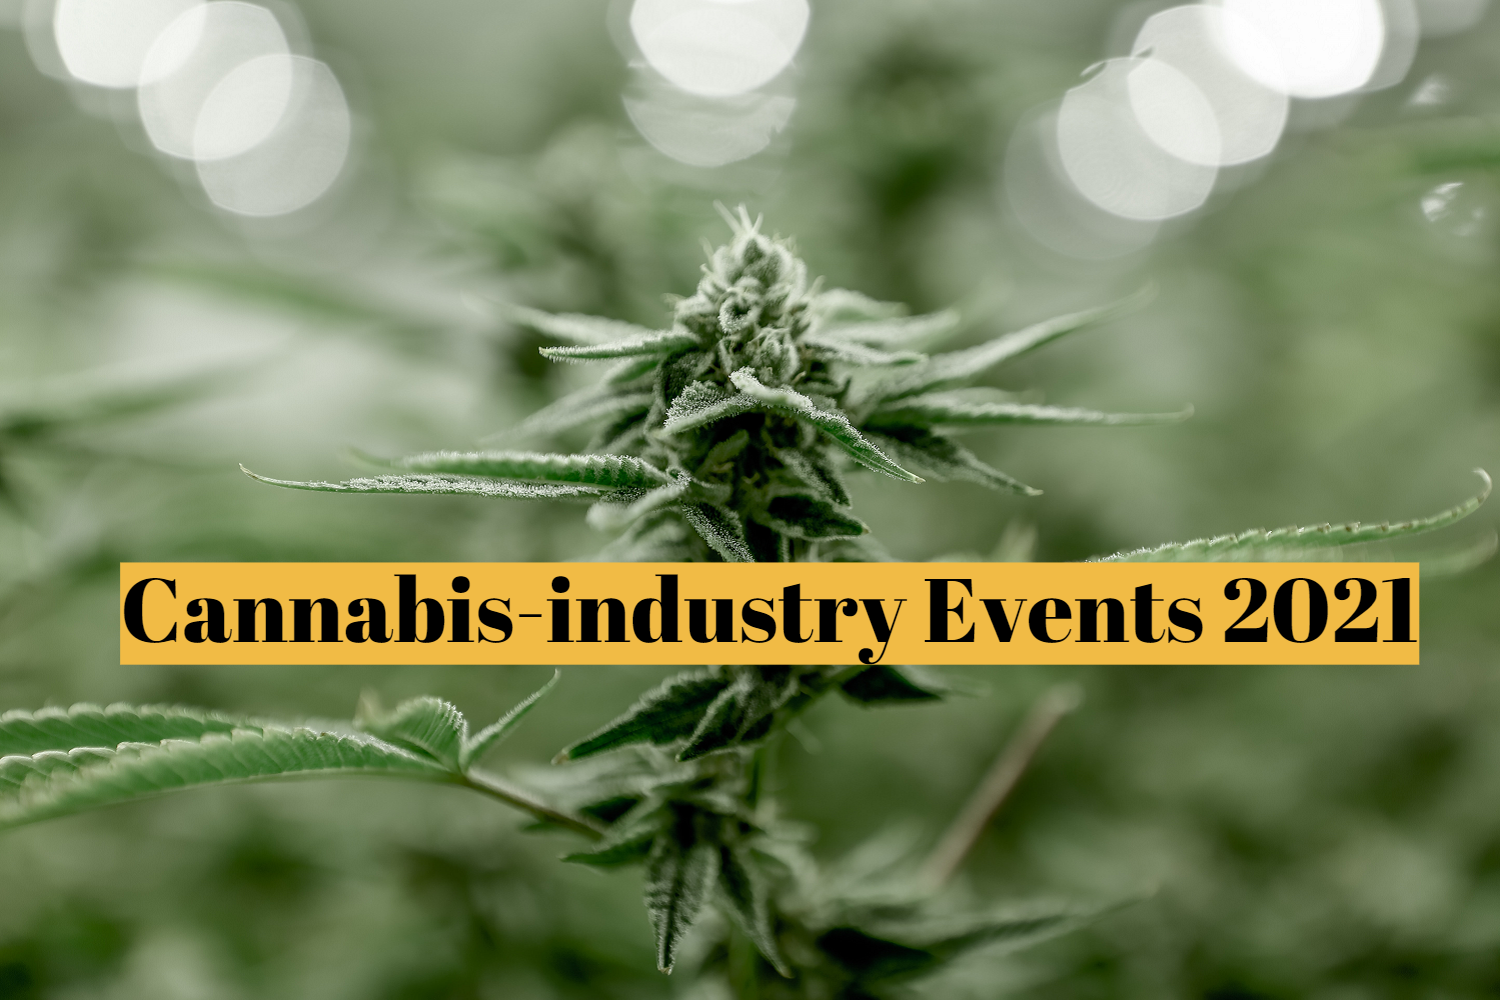 Cannabis-industry EXPO/Conference Updated Schedule in 2021